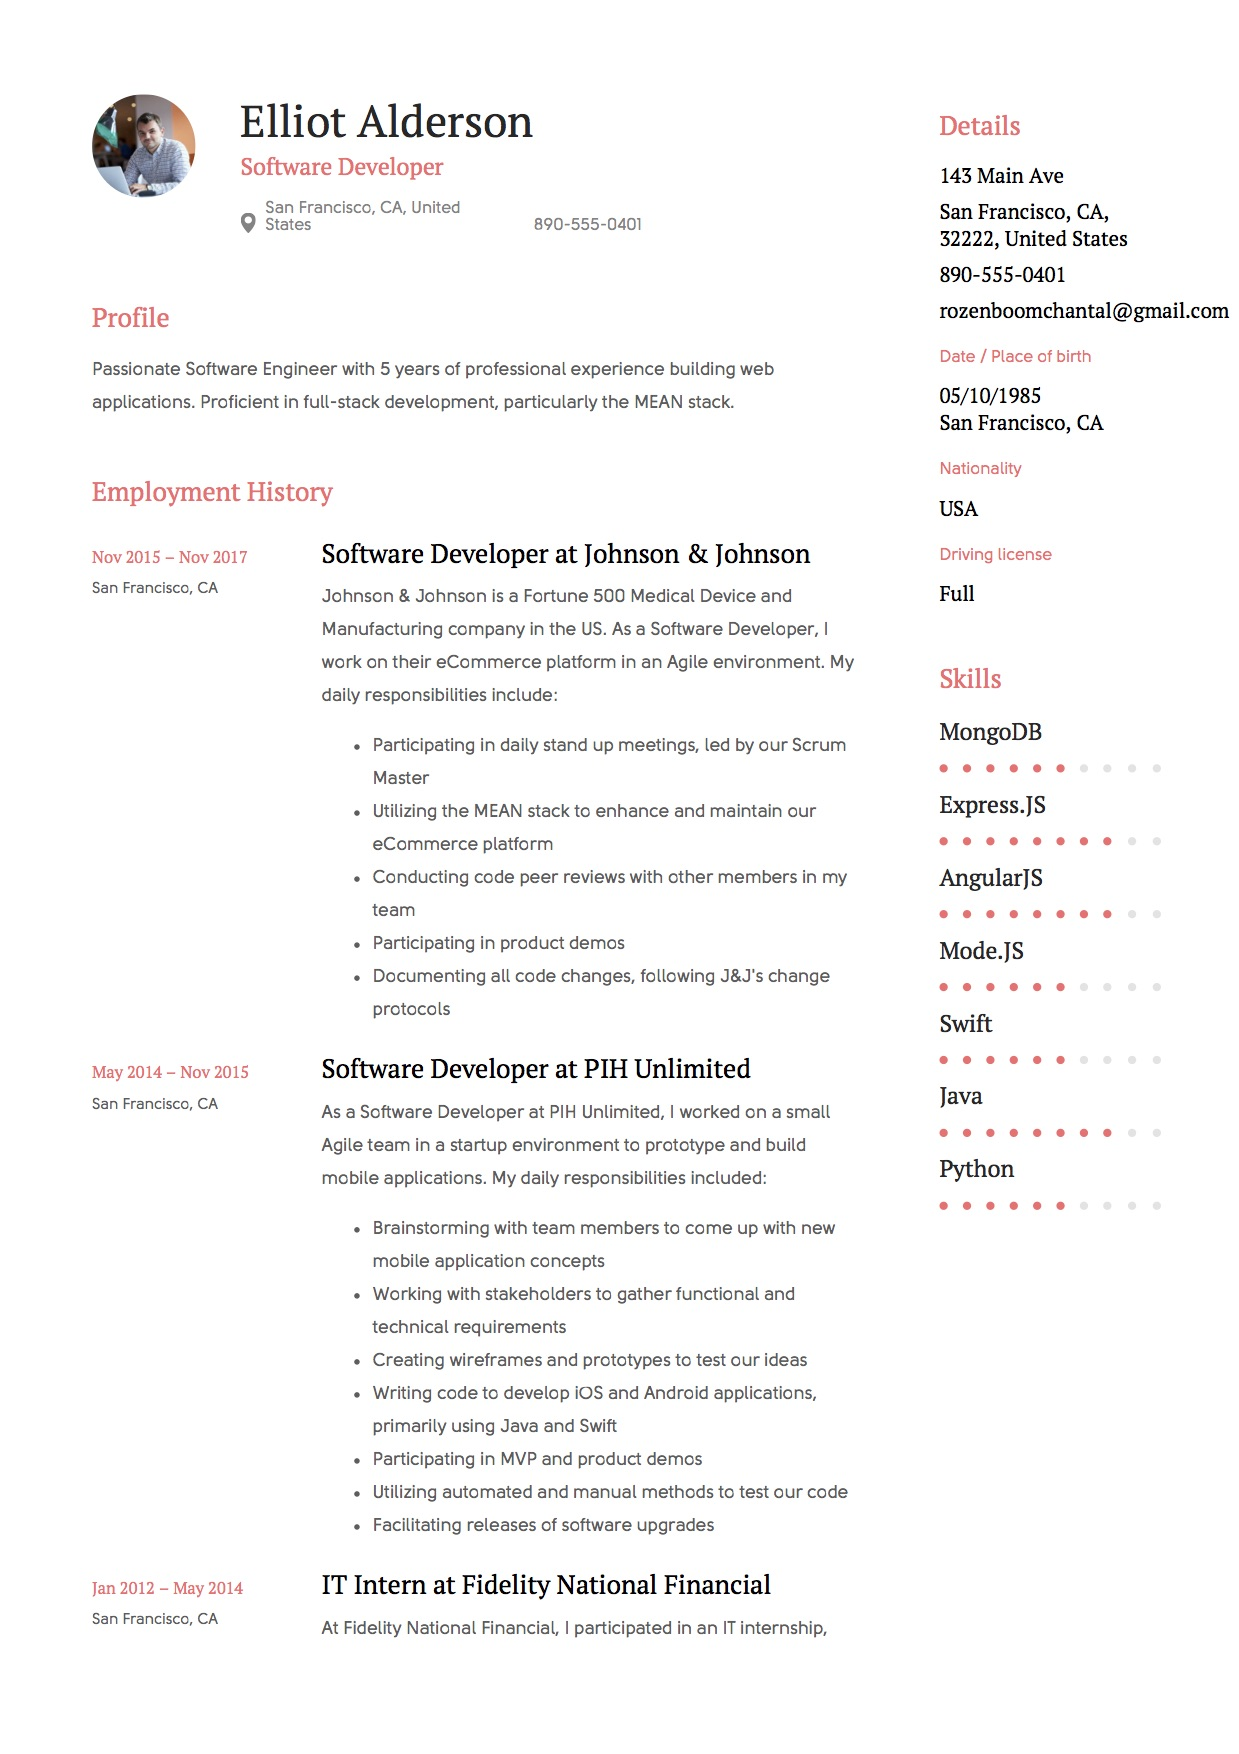 oftware developer resume example6 - Software Engineer Resume Examples